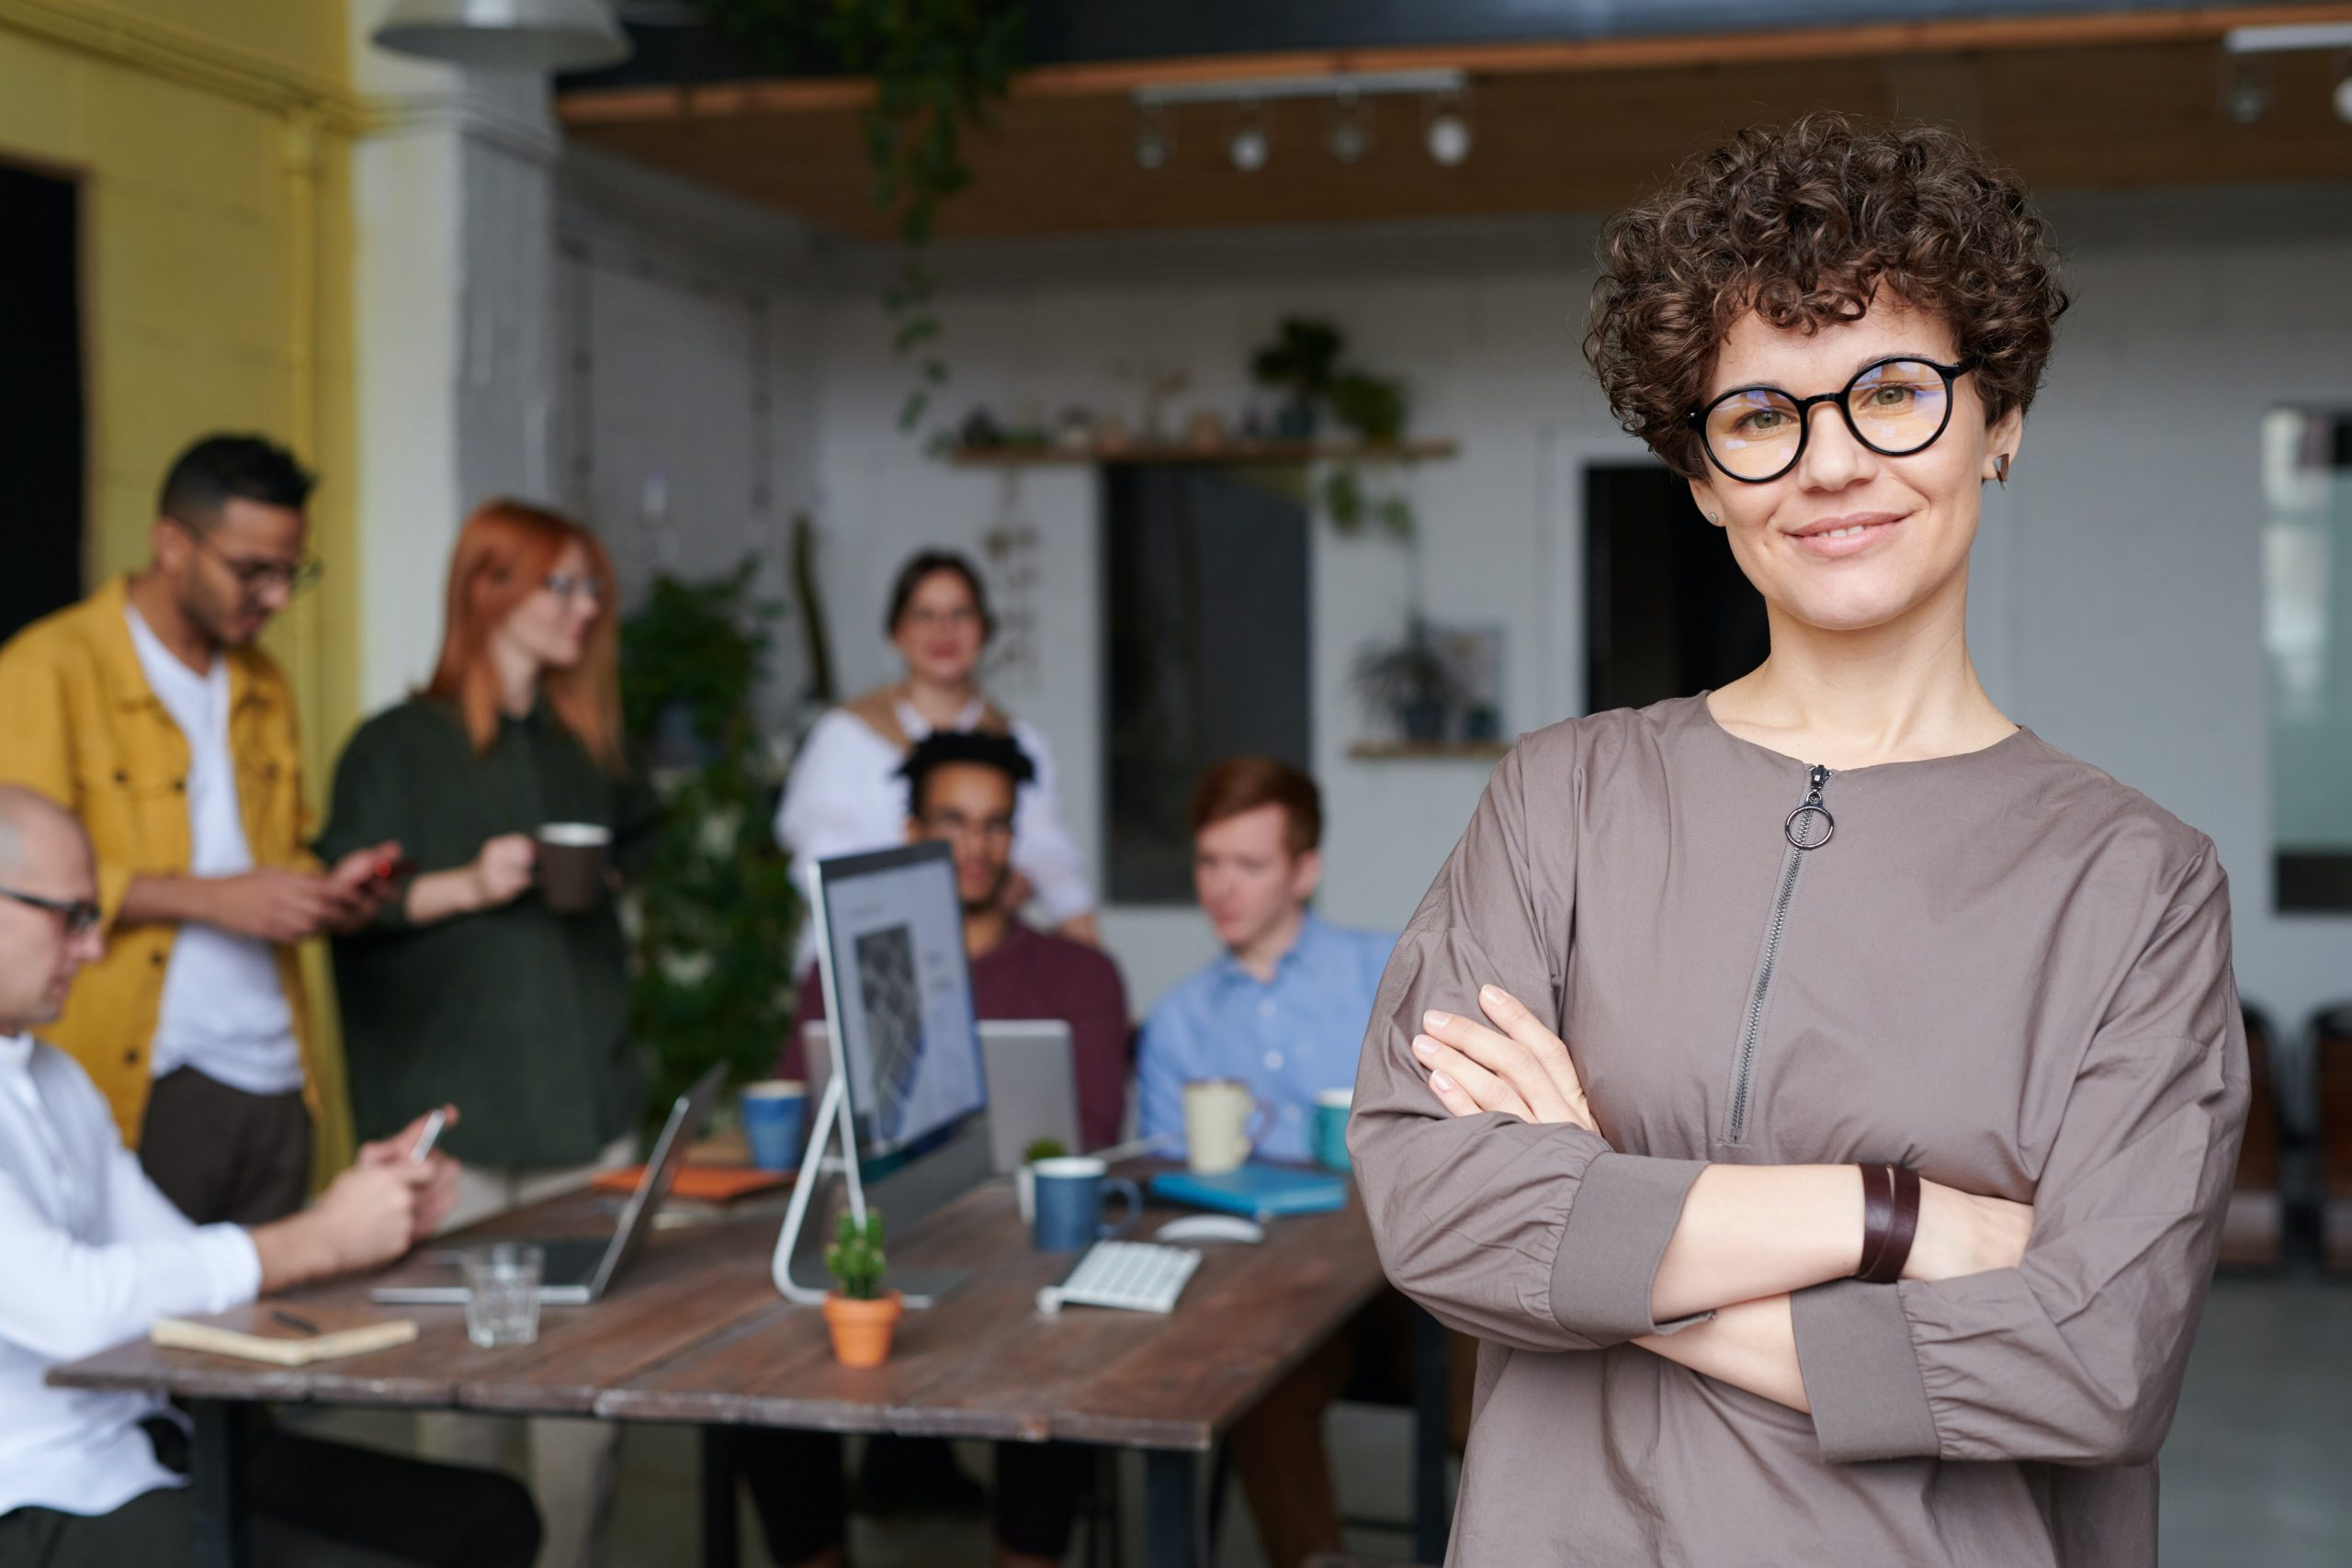 Office concept with woman wearing glasses in forefront.